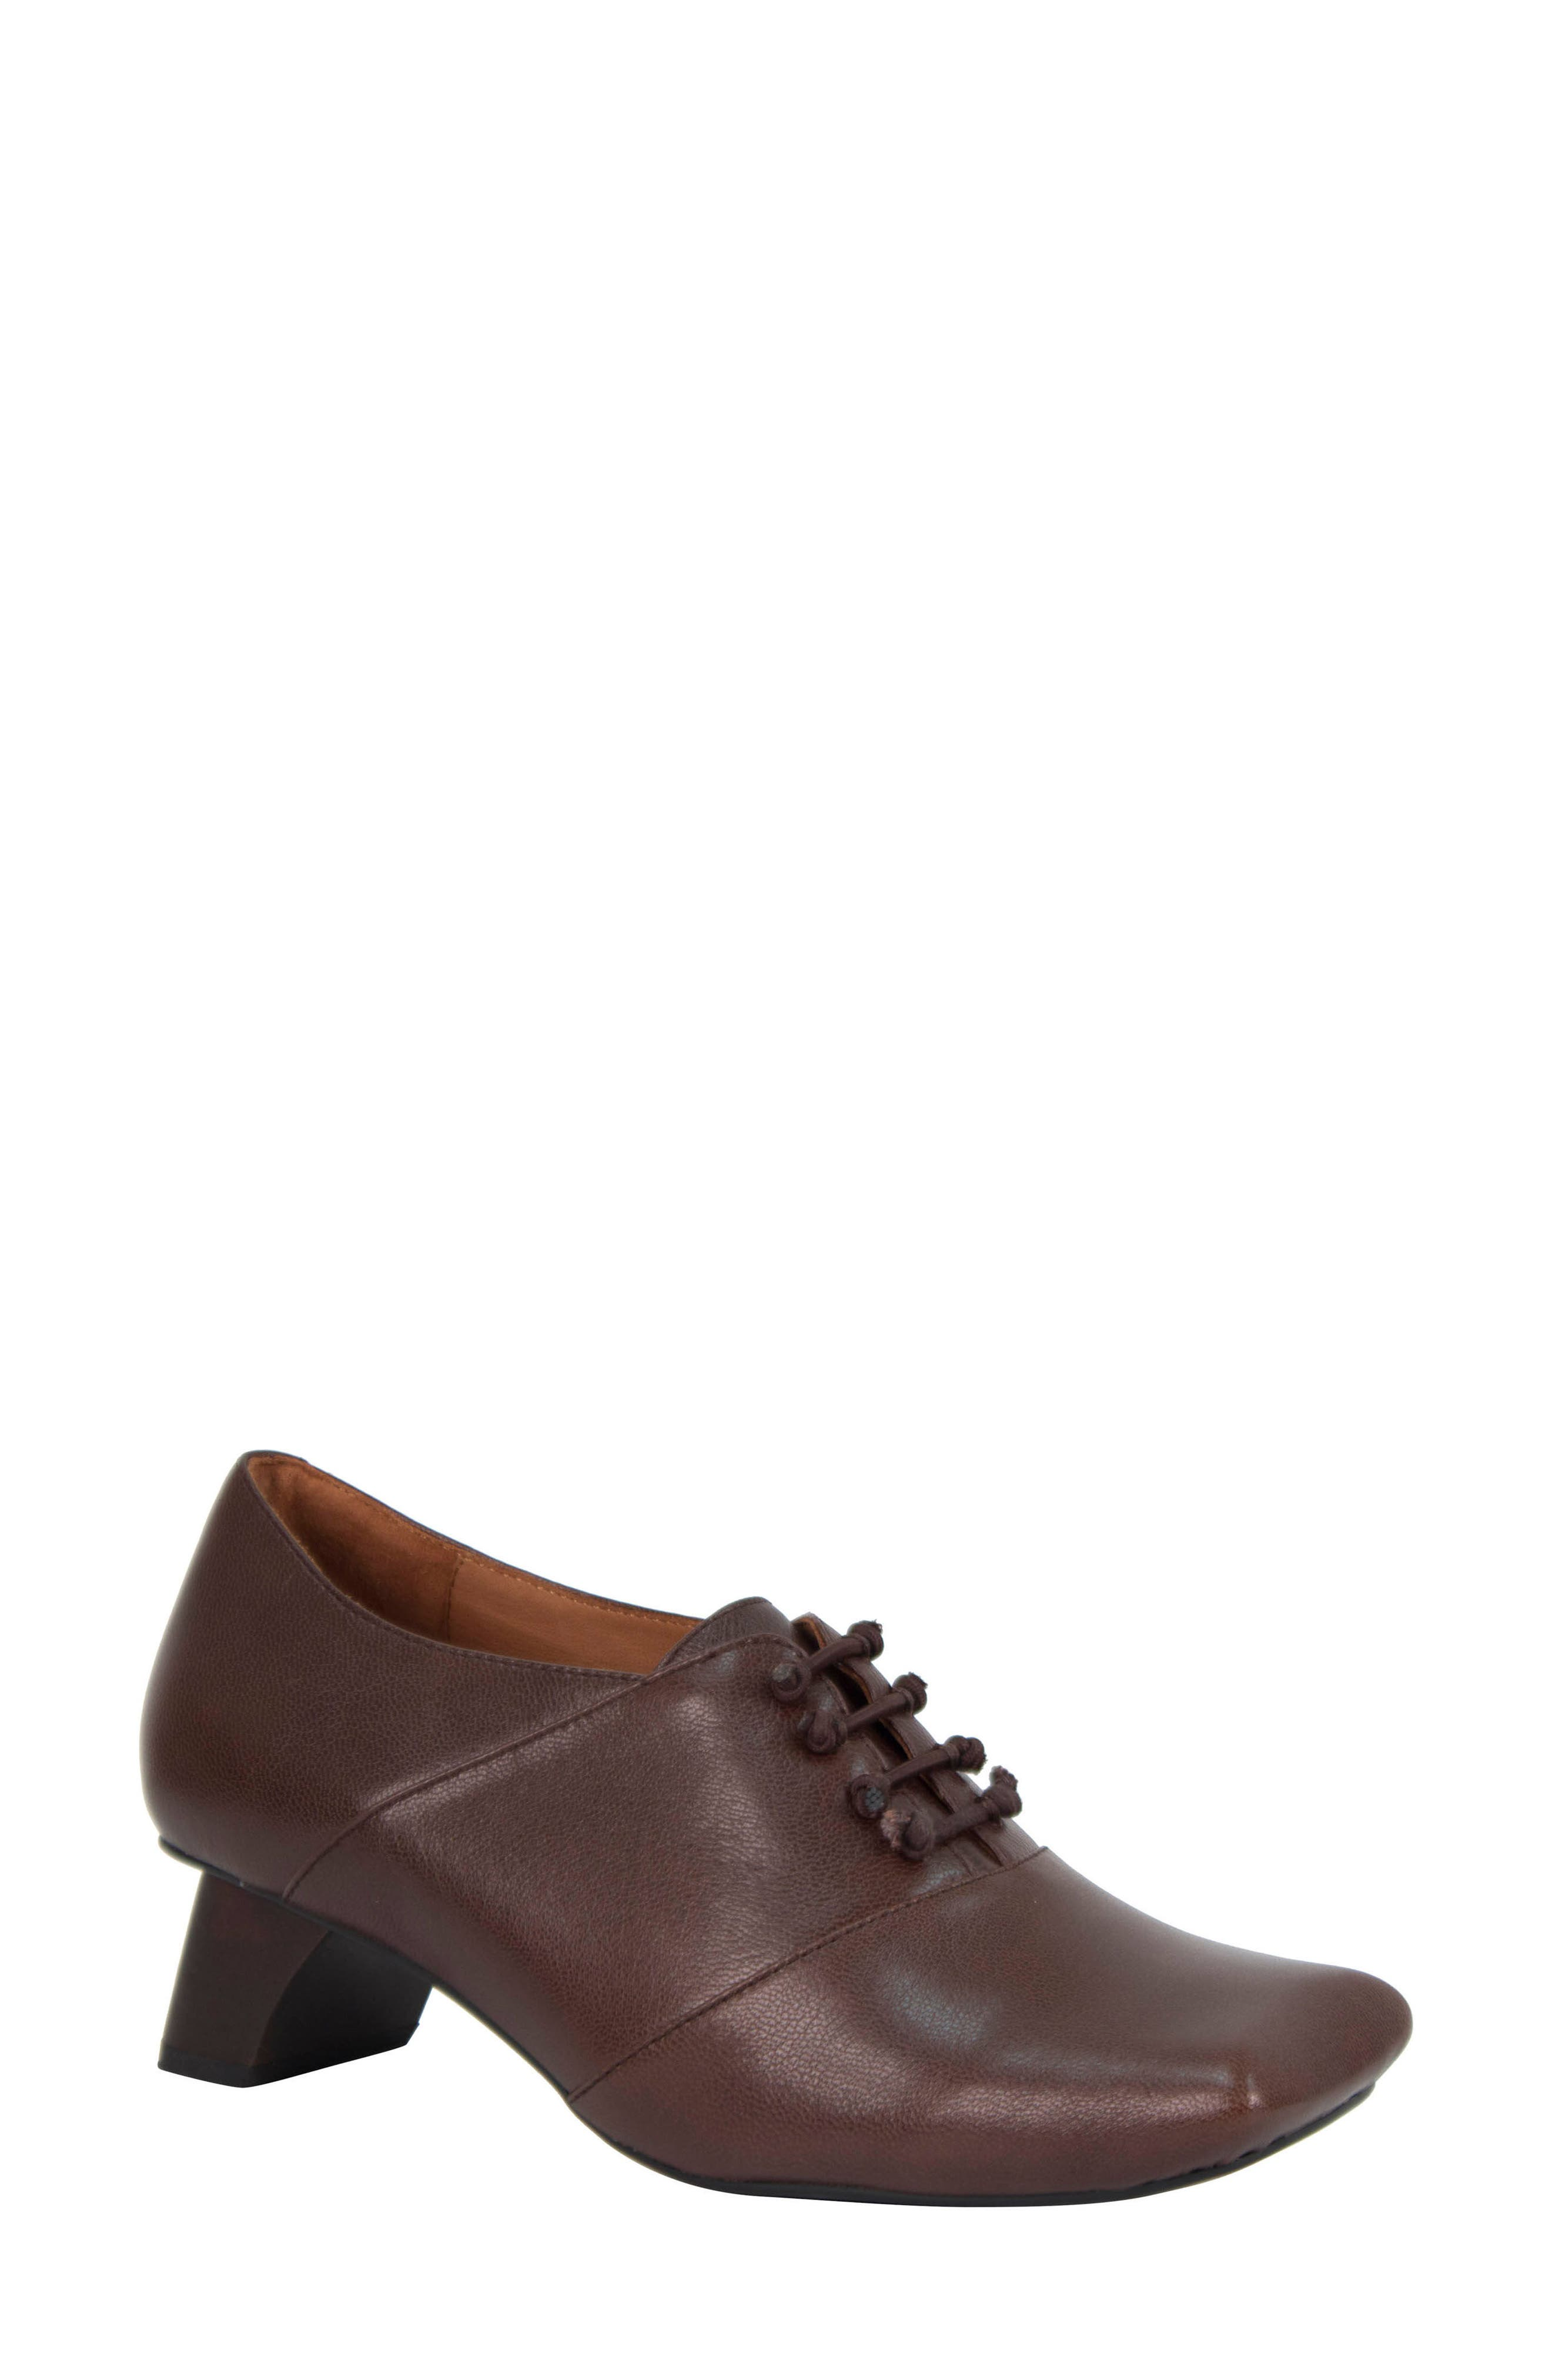 Winifred Lace-Up Bootie,                             Main thumbnail 1, color,                             Moro Leather